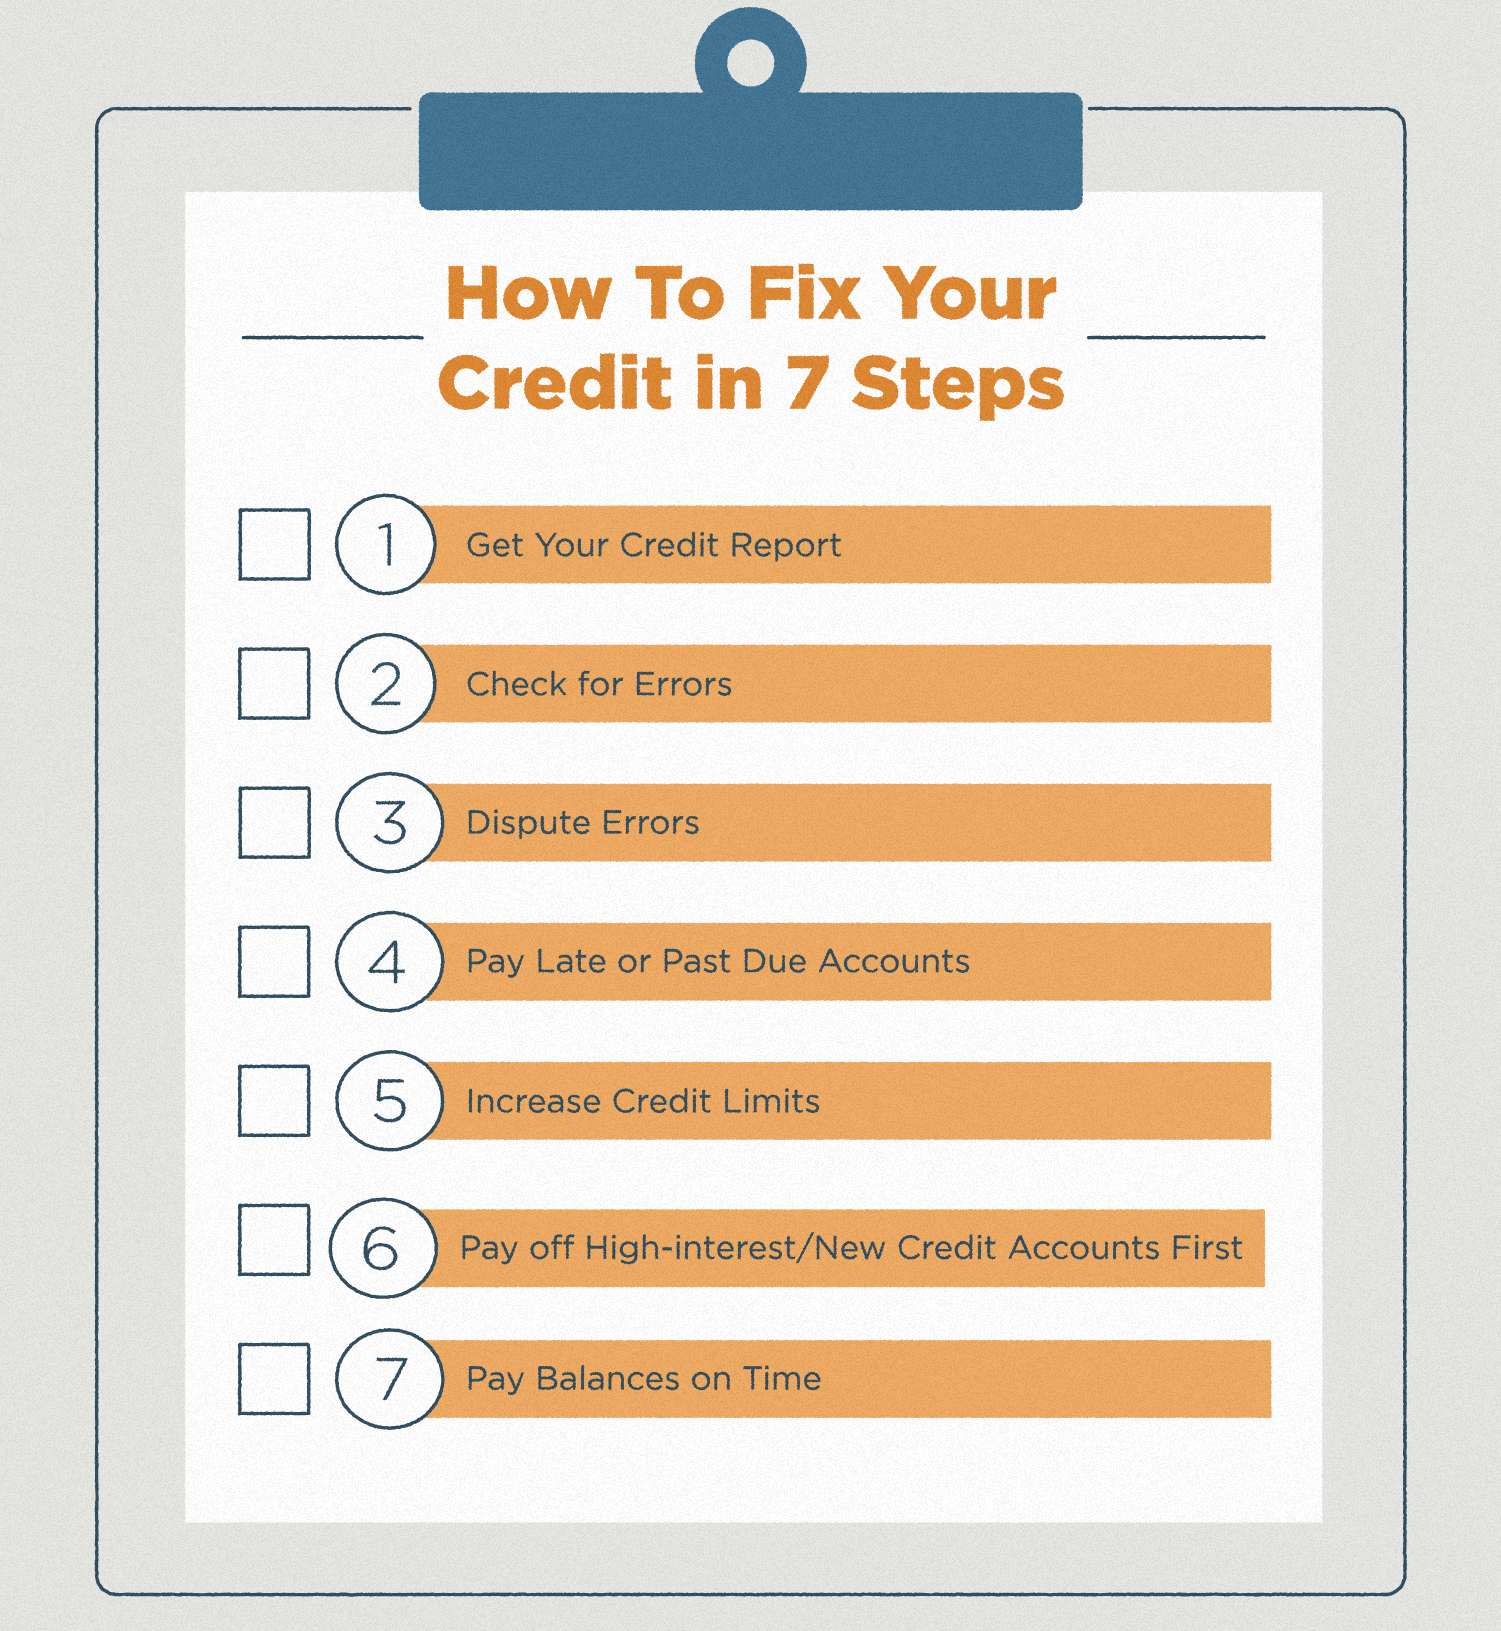 How to Fix Your Credit | Lexington Law